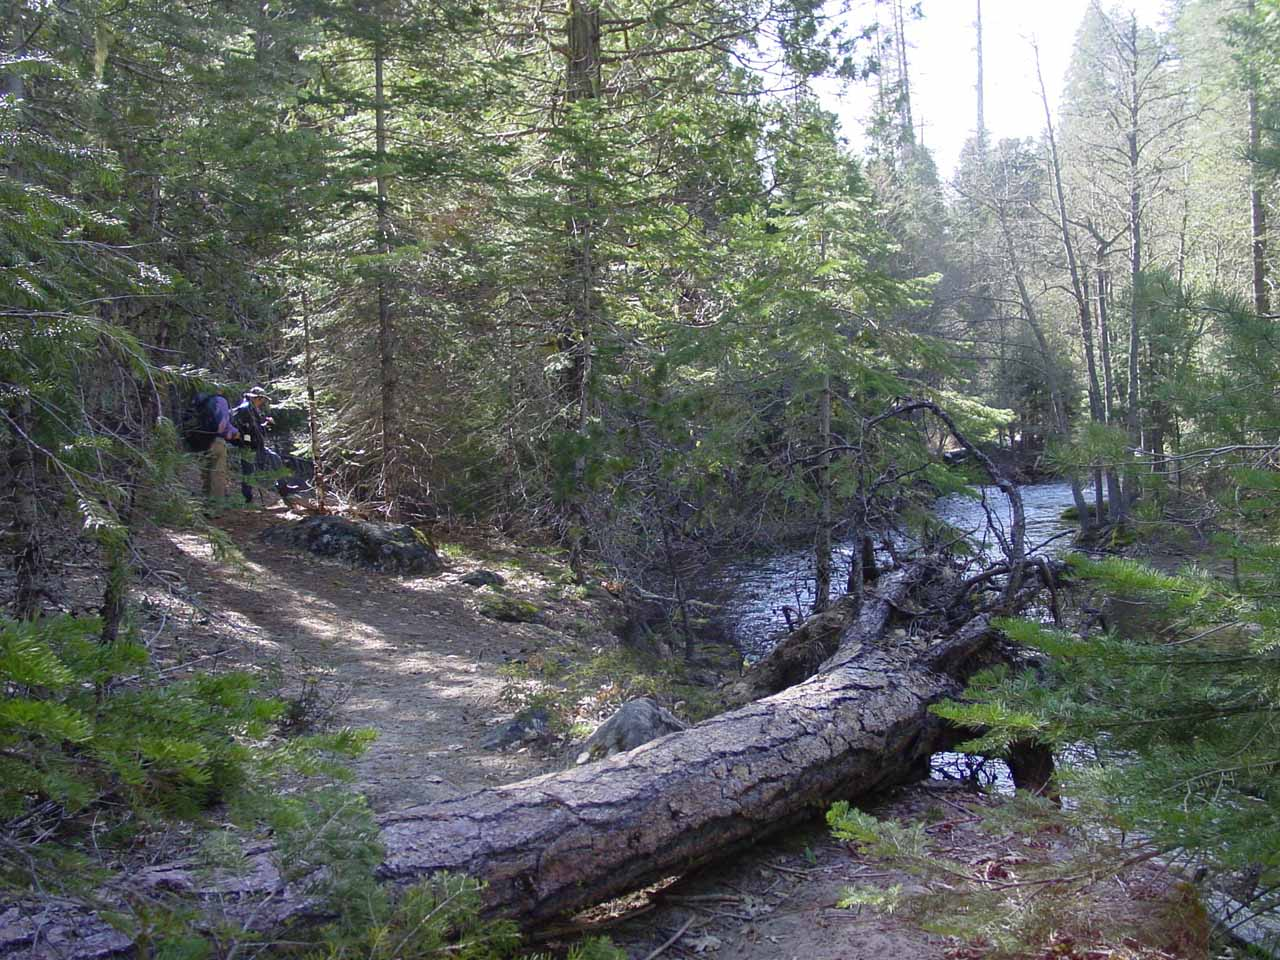 Just to give you an idea of what the hike was like in 2004, here's look at us going over a fallen tree as the trail meandered by the South Fork Tuolumne River